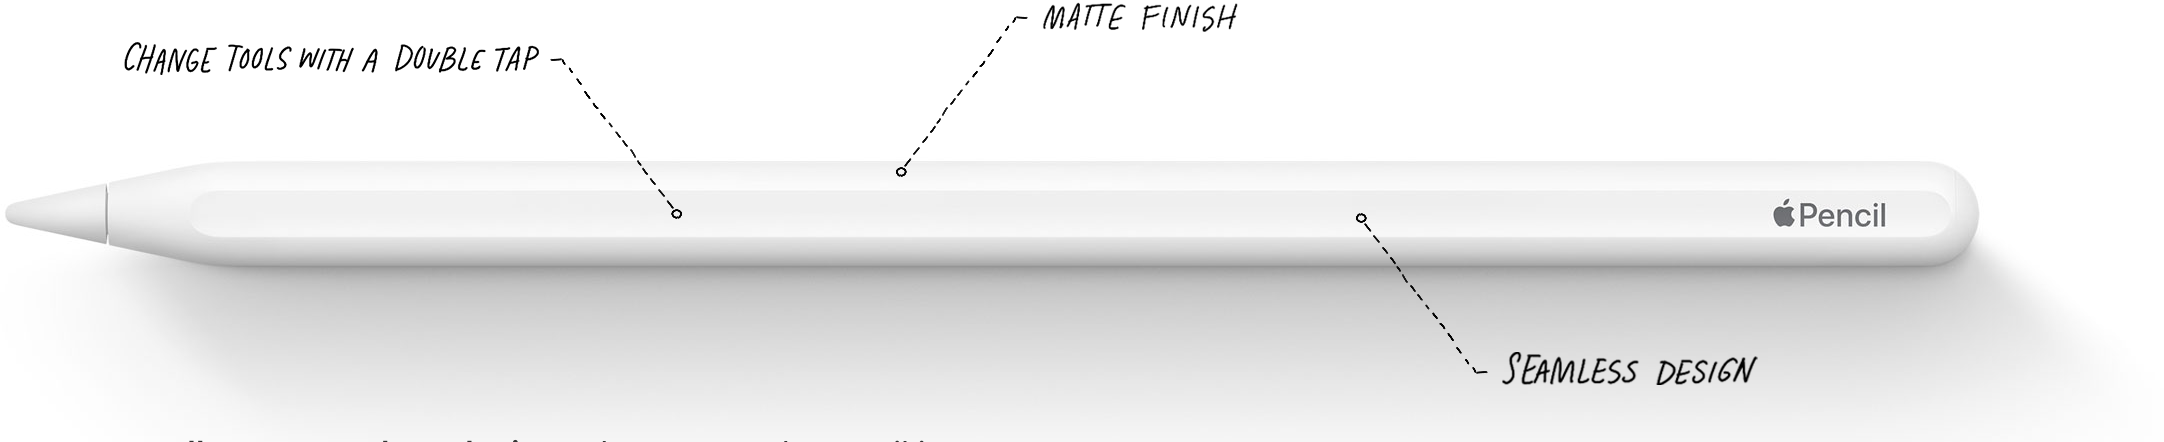 apple pencil details